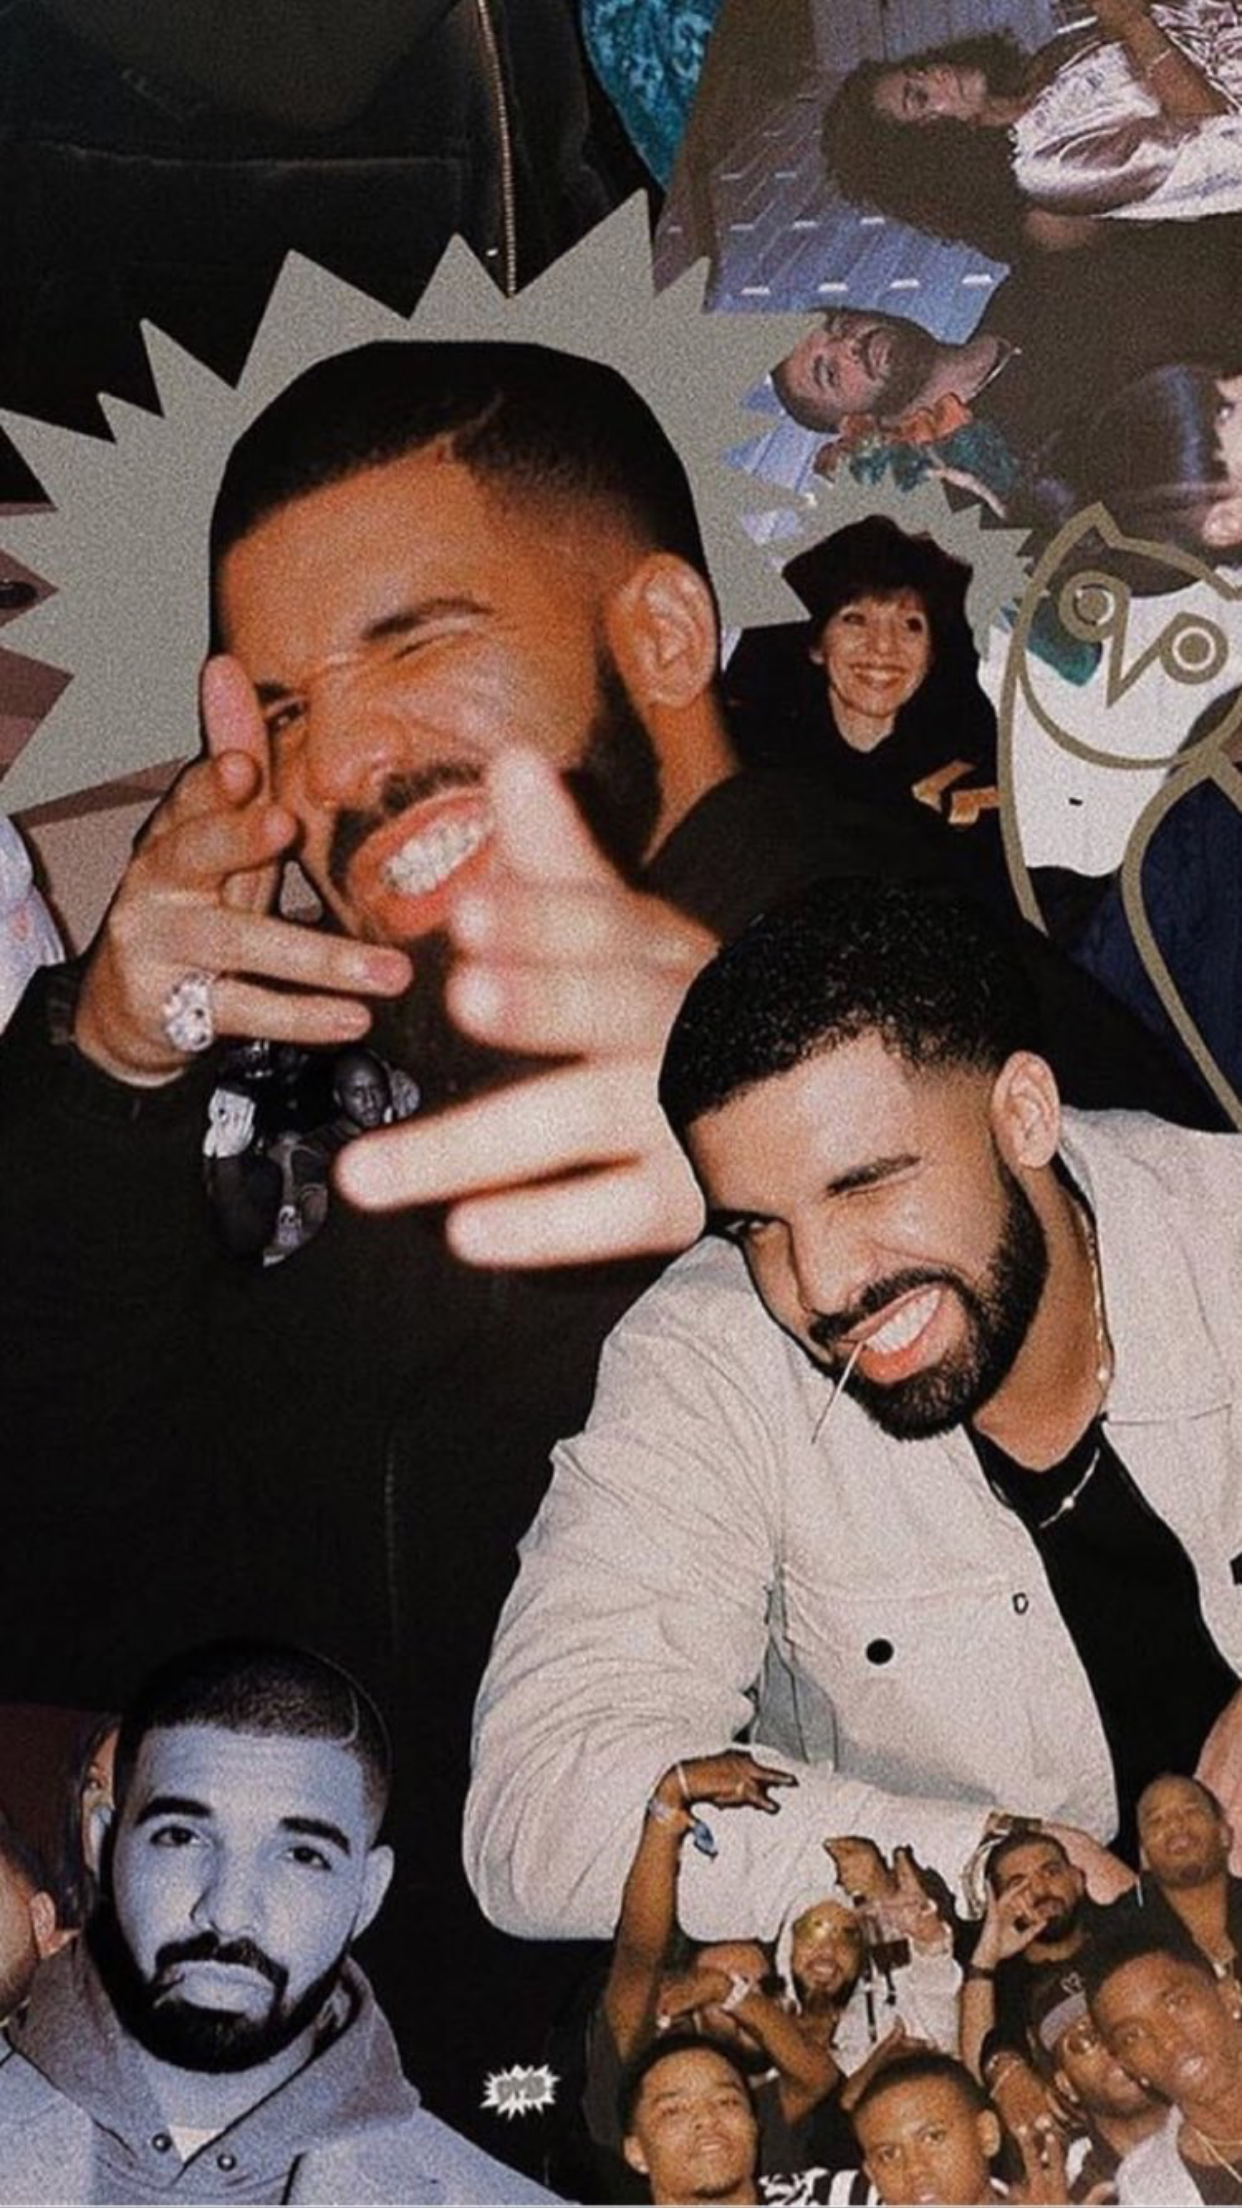 Pin By 𝑩𝒓𝒖𝒏𝒂 On Wallpapers Drake Wallpapers Drake Art Aubrey Drake